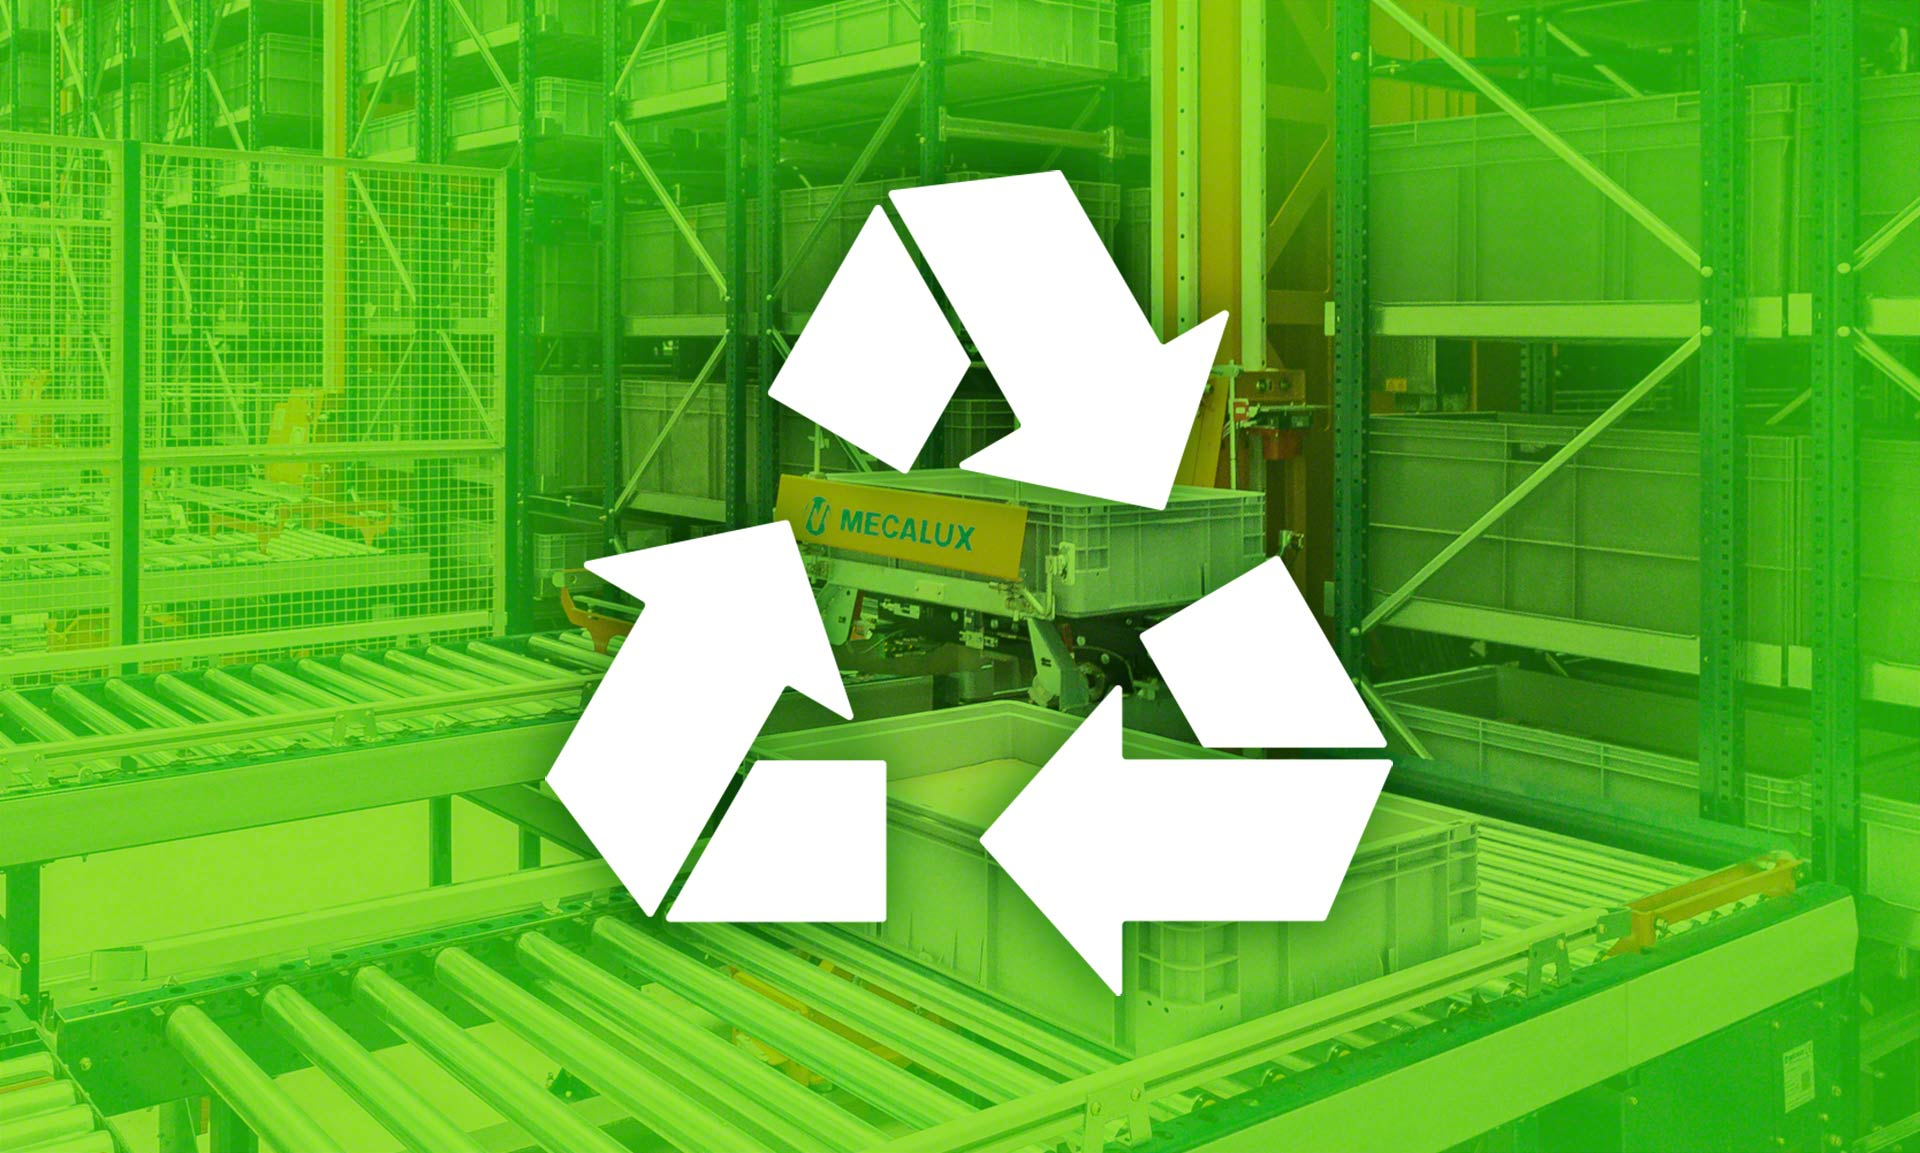 Sustainable logistics aims to reduce the environmental impact of the supply chain